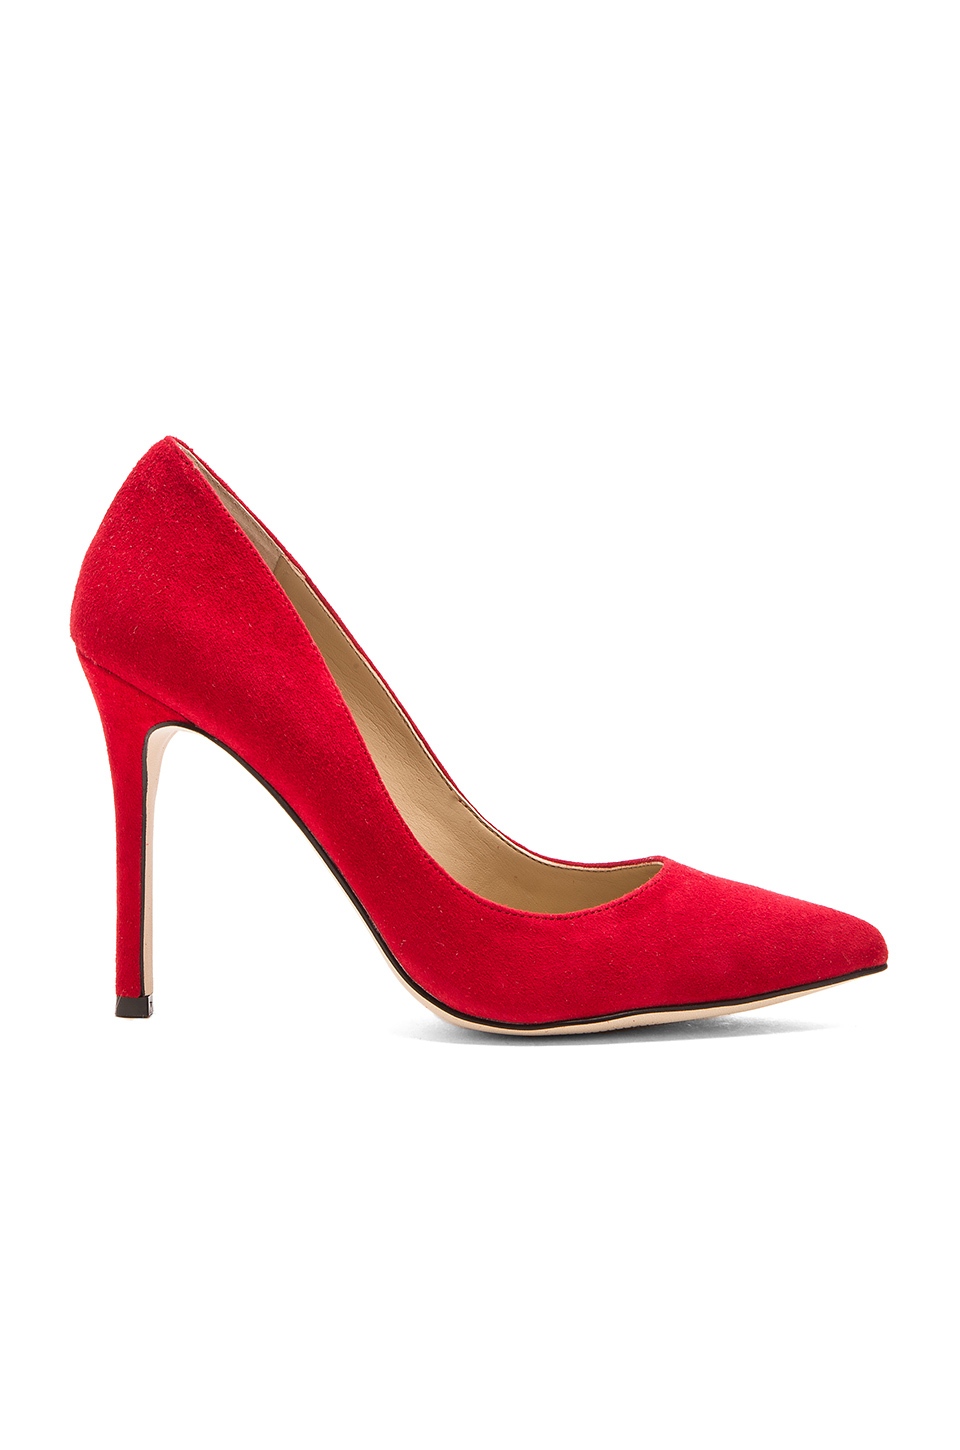 dbbfa409a3c Lyst - BCBGeneration Treasure Suede Pumps in Red